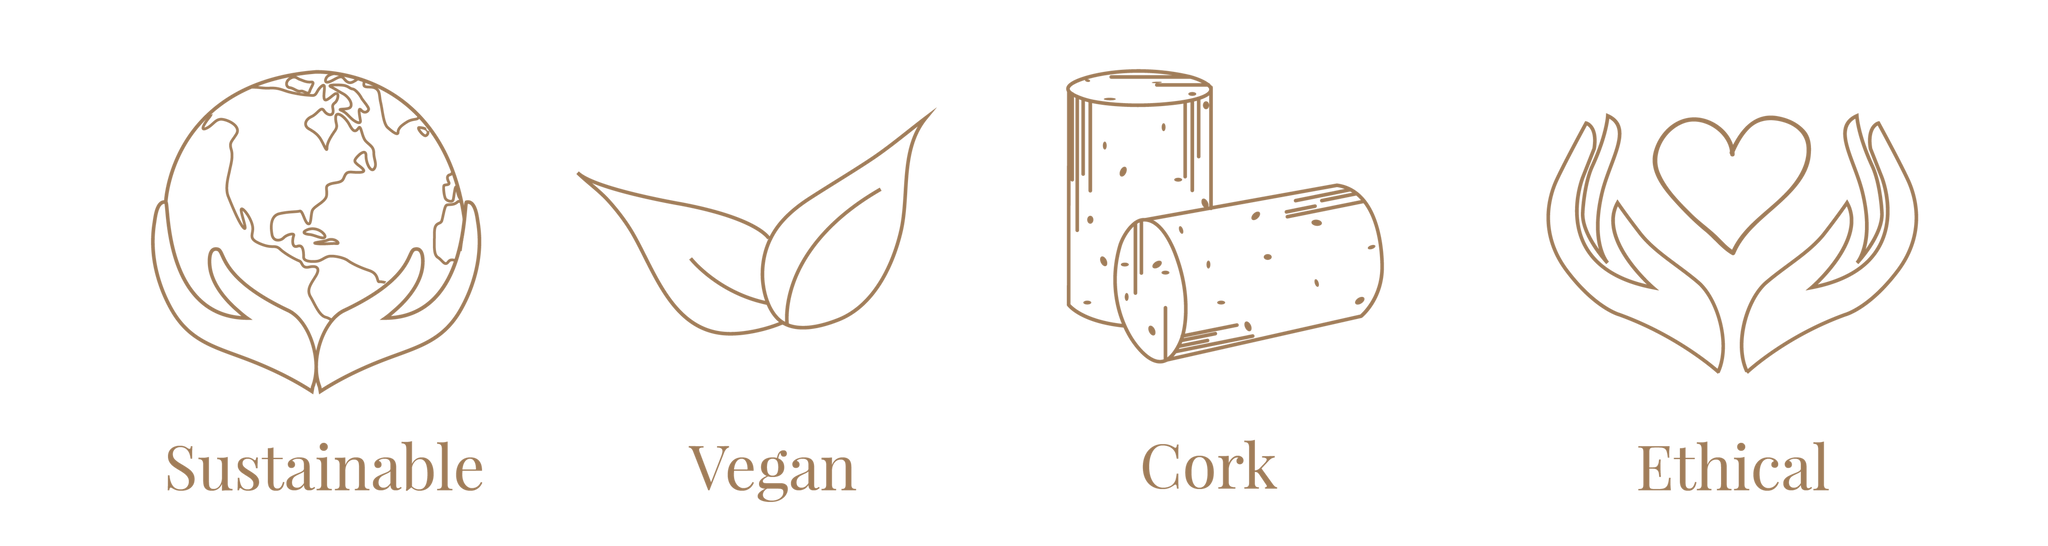 Arture Sustainable Vegan Cork